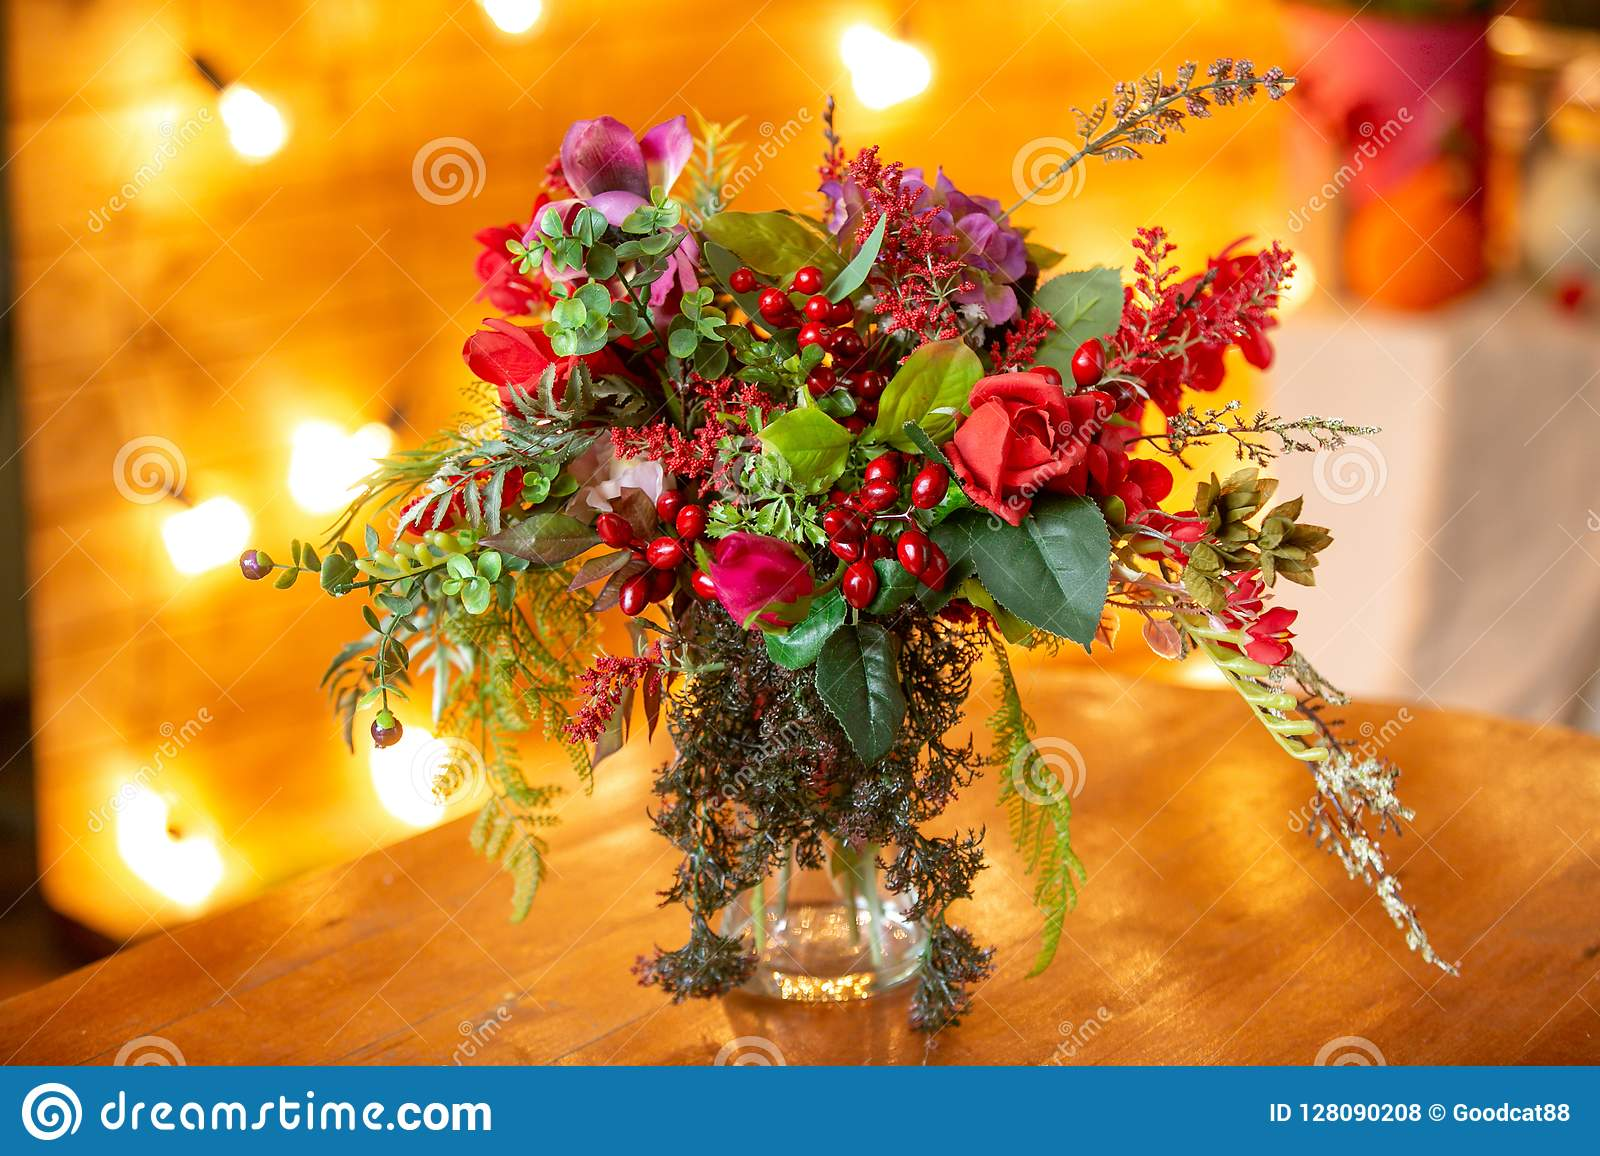 Flower arrangement with red berries, red roses and greens on the table